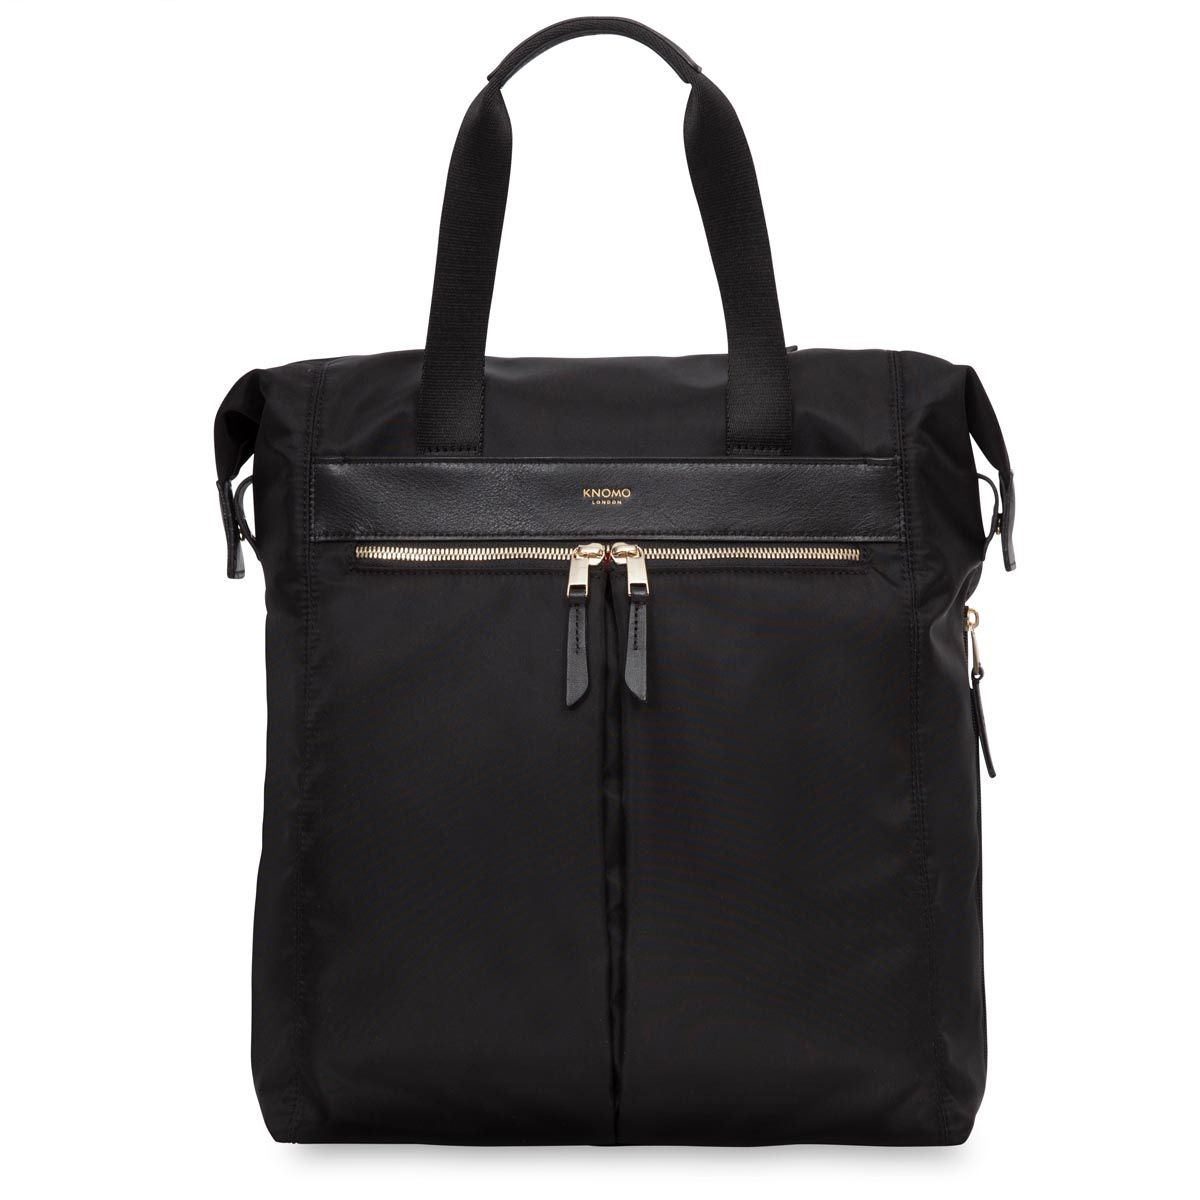 Knomo Chiltern Tote Backpack Black 15 inch